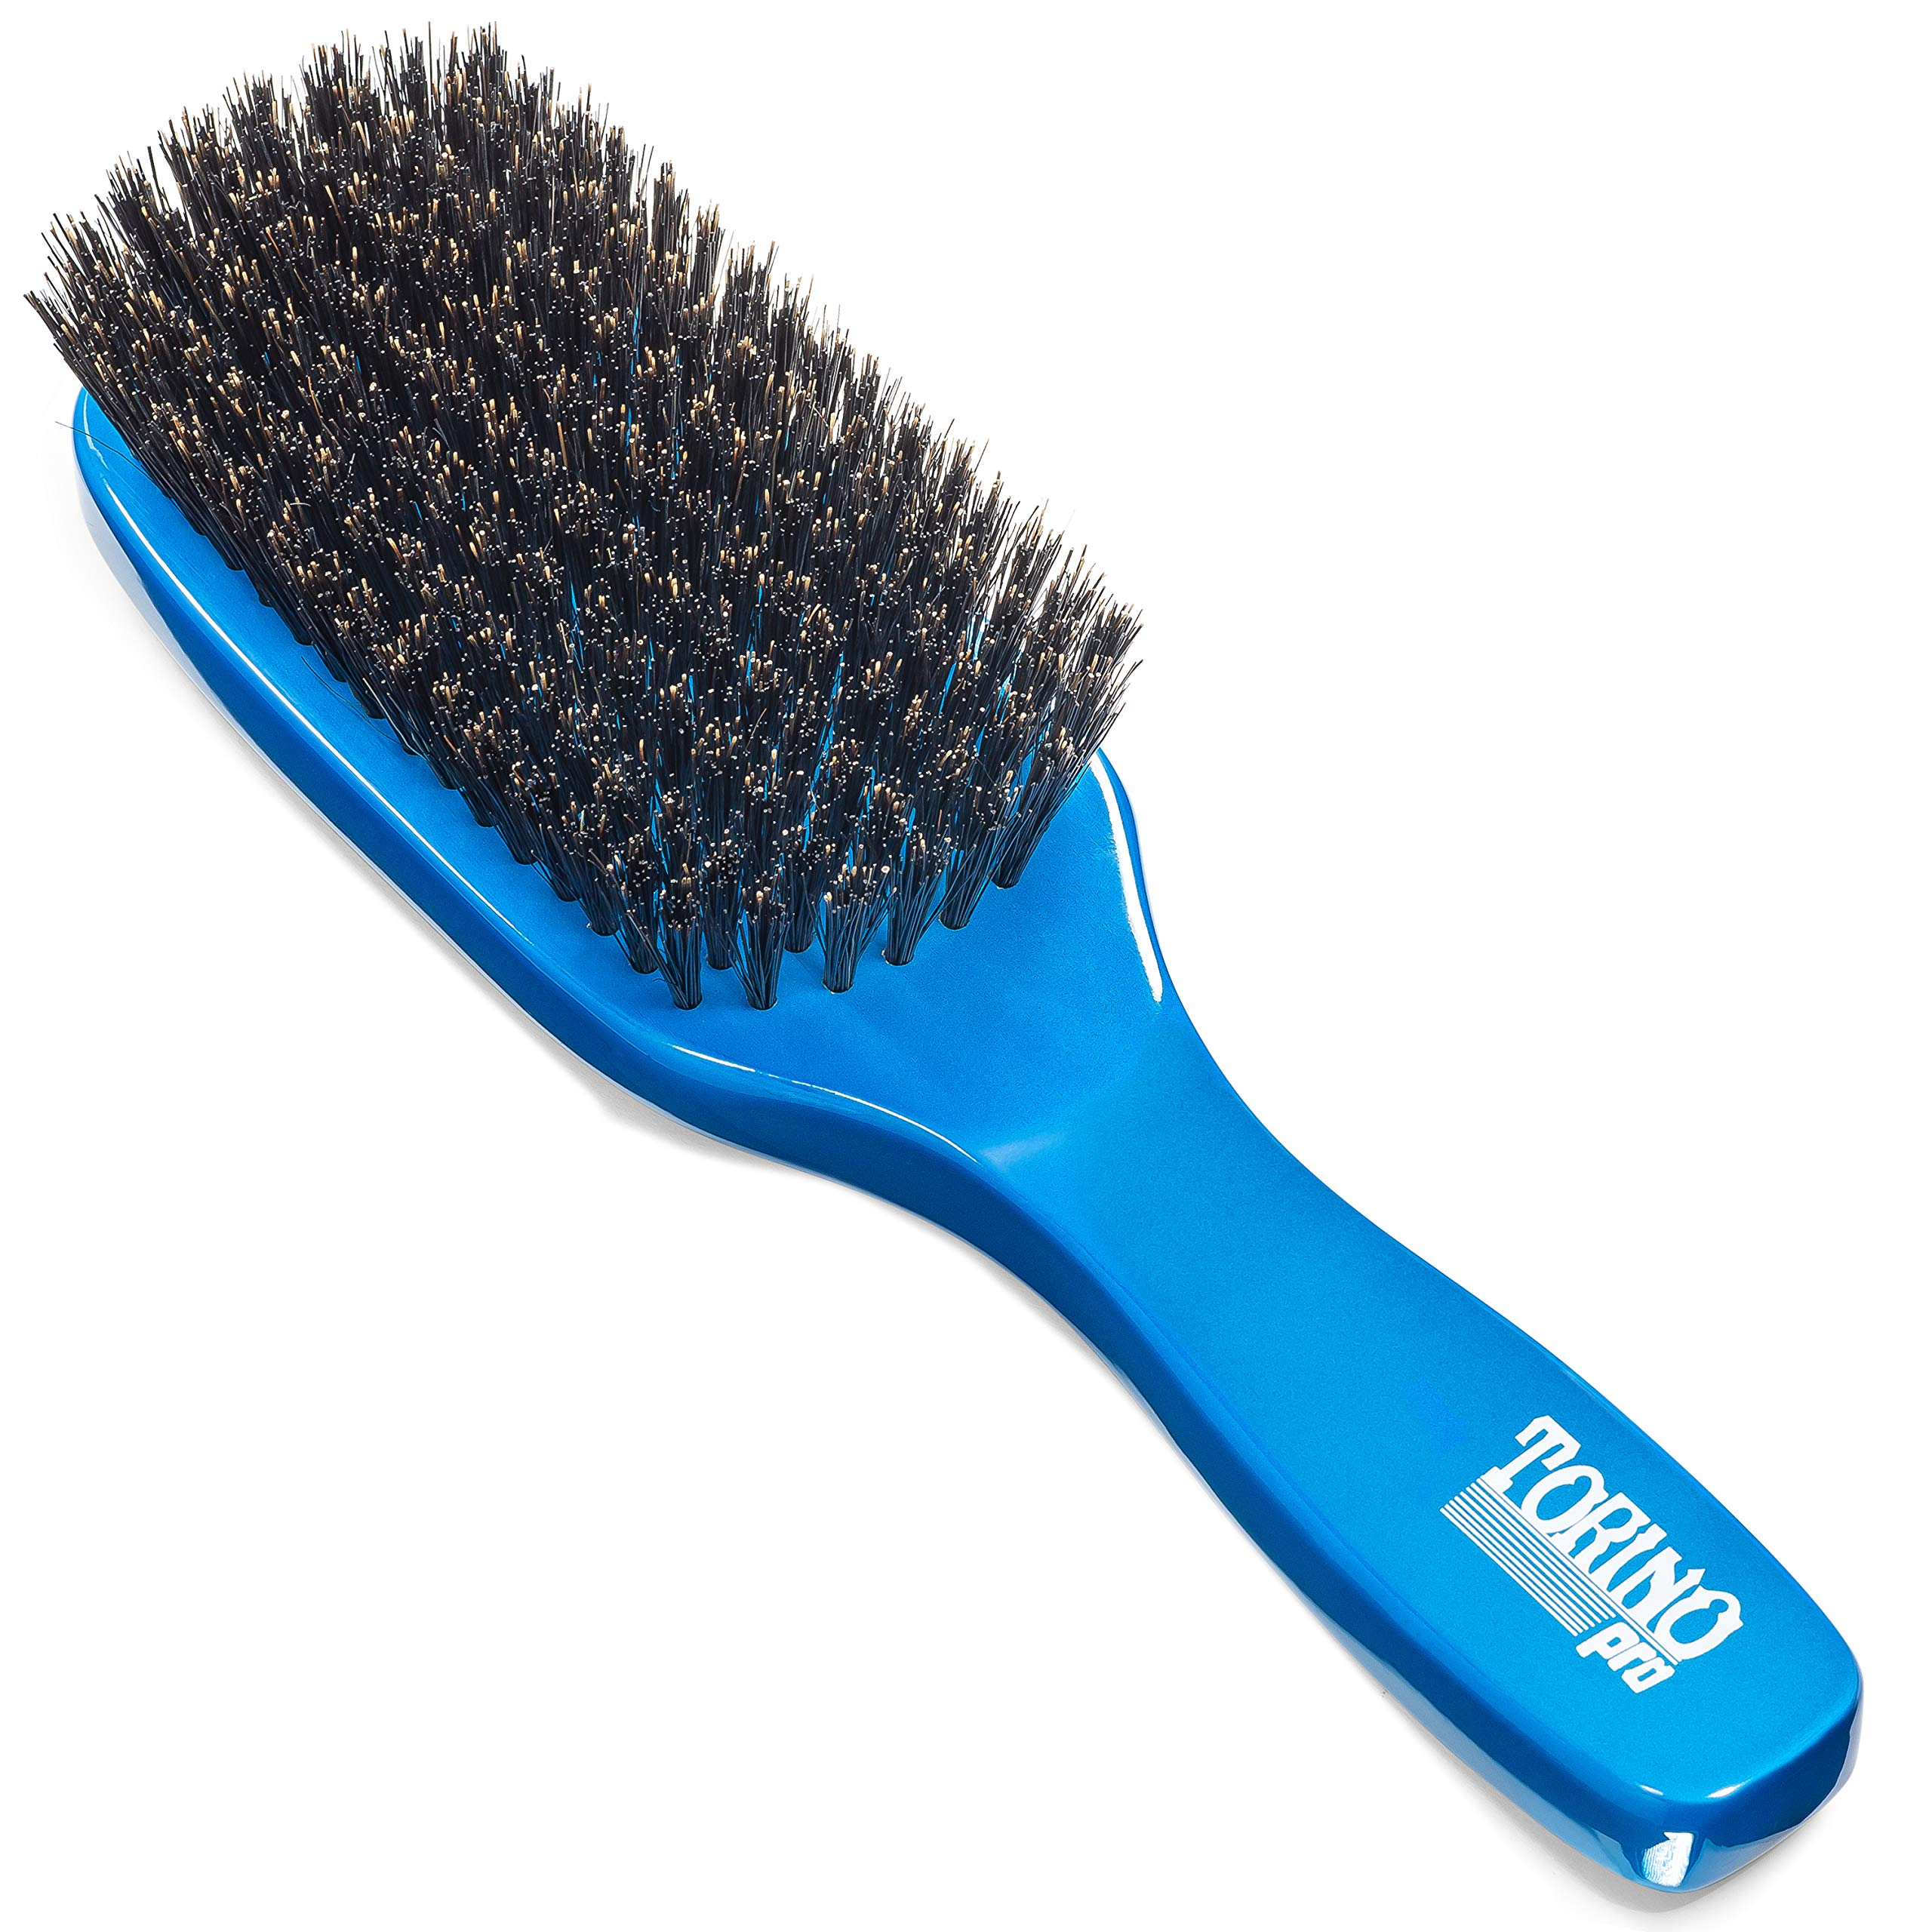 Torino Pro Medium Wave Brush By Brush King - #1850-8 Row Extra Long Bristles- Medium waves brush - Great pull - Great for connections - for 360 waves